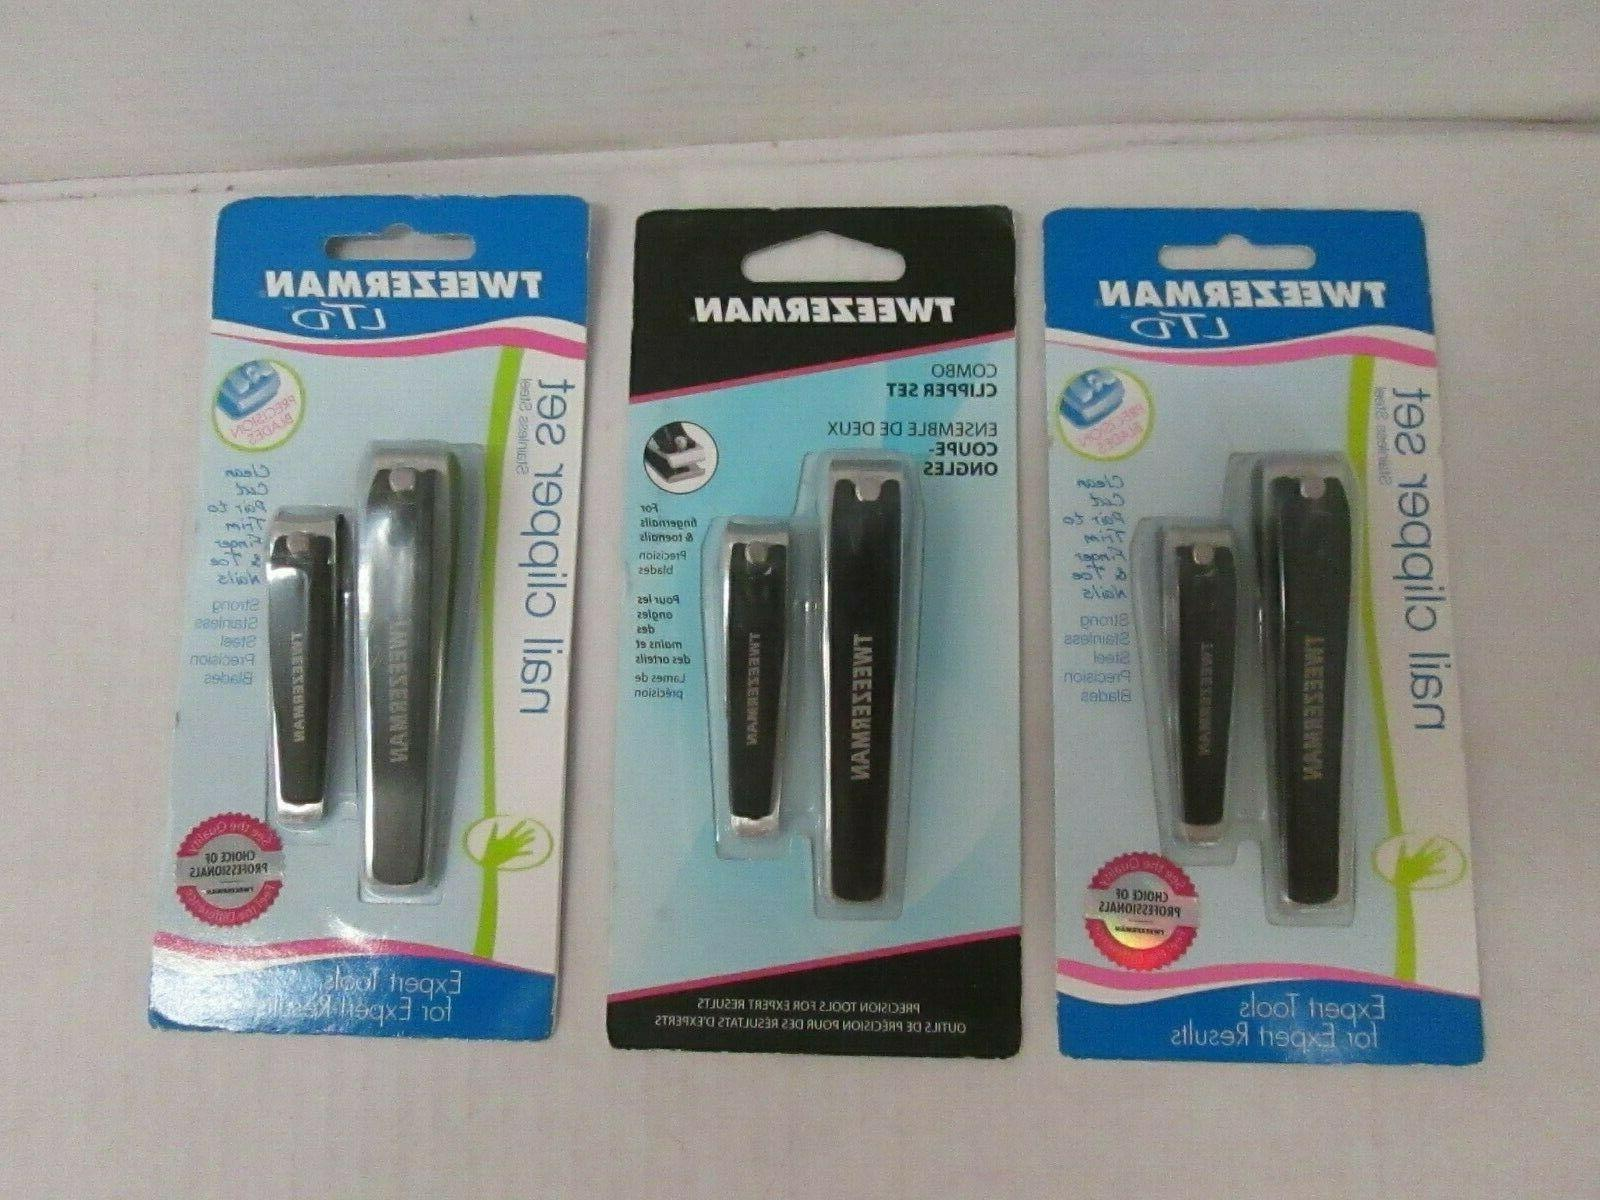 3 staineless steel nail clipper sets new